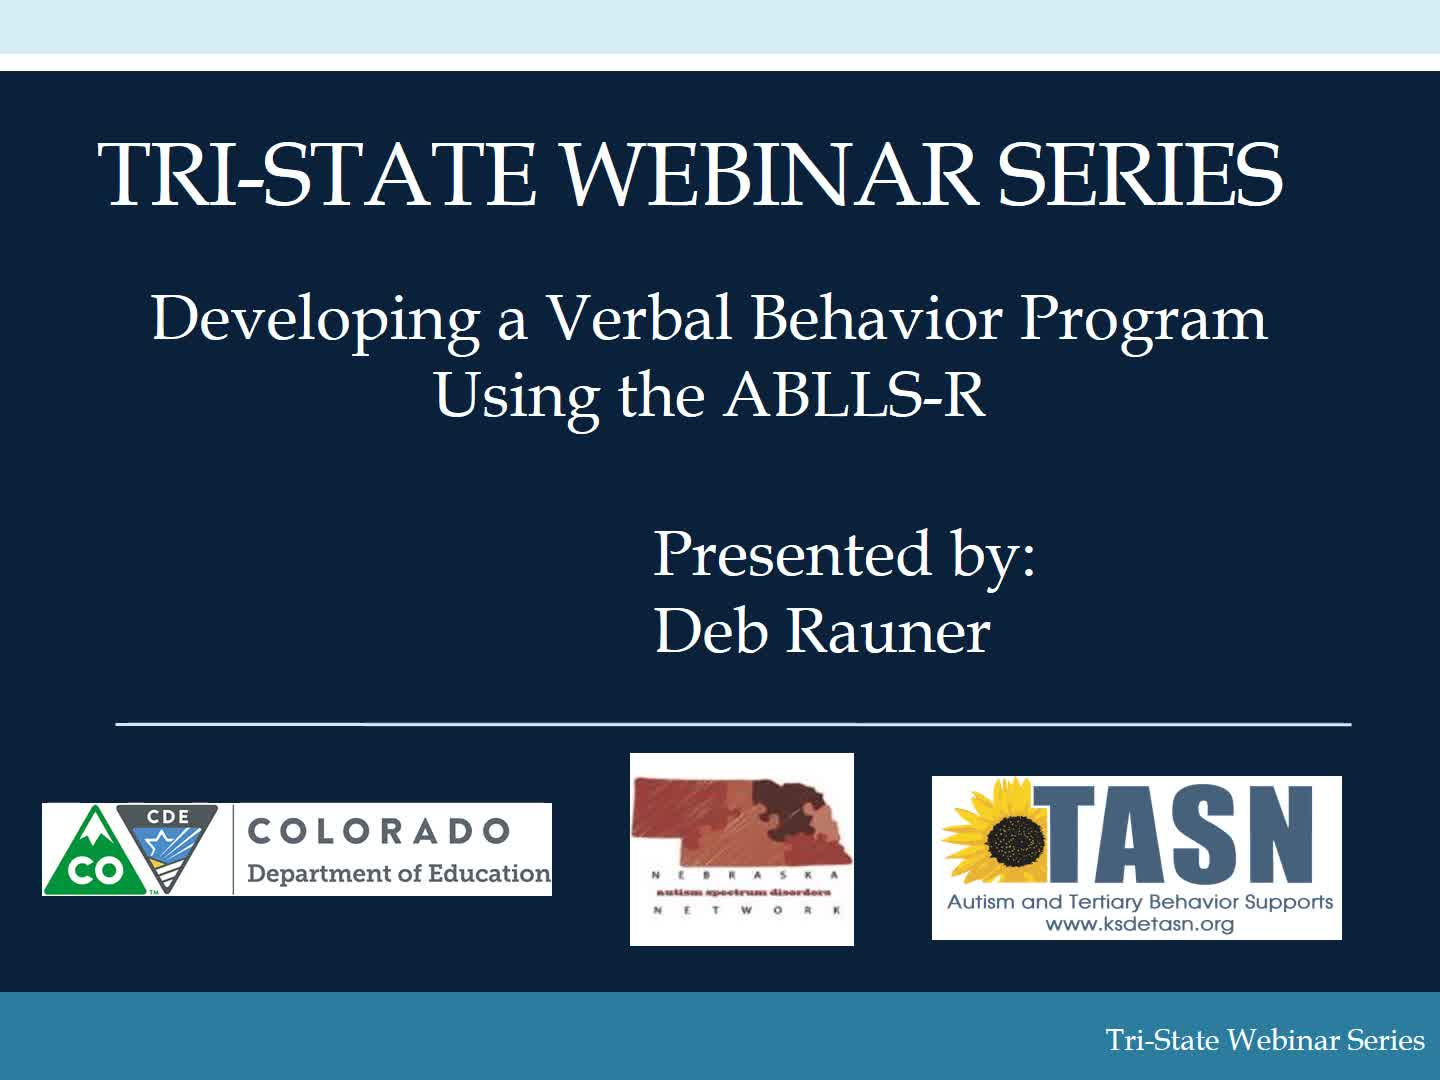 Developing a Verbal Behavior Program with the ABLLS-R